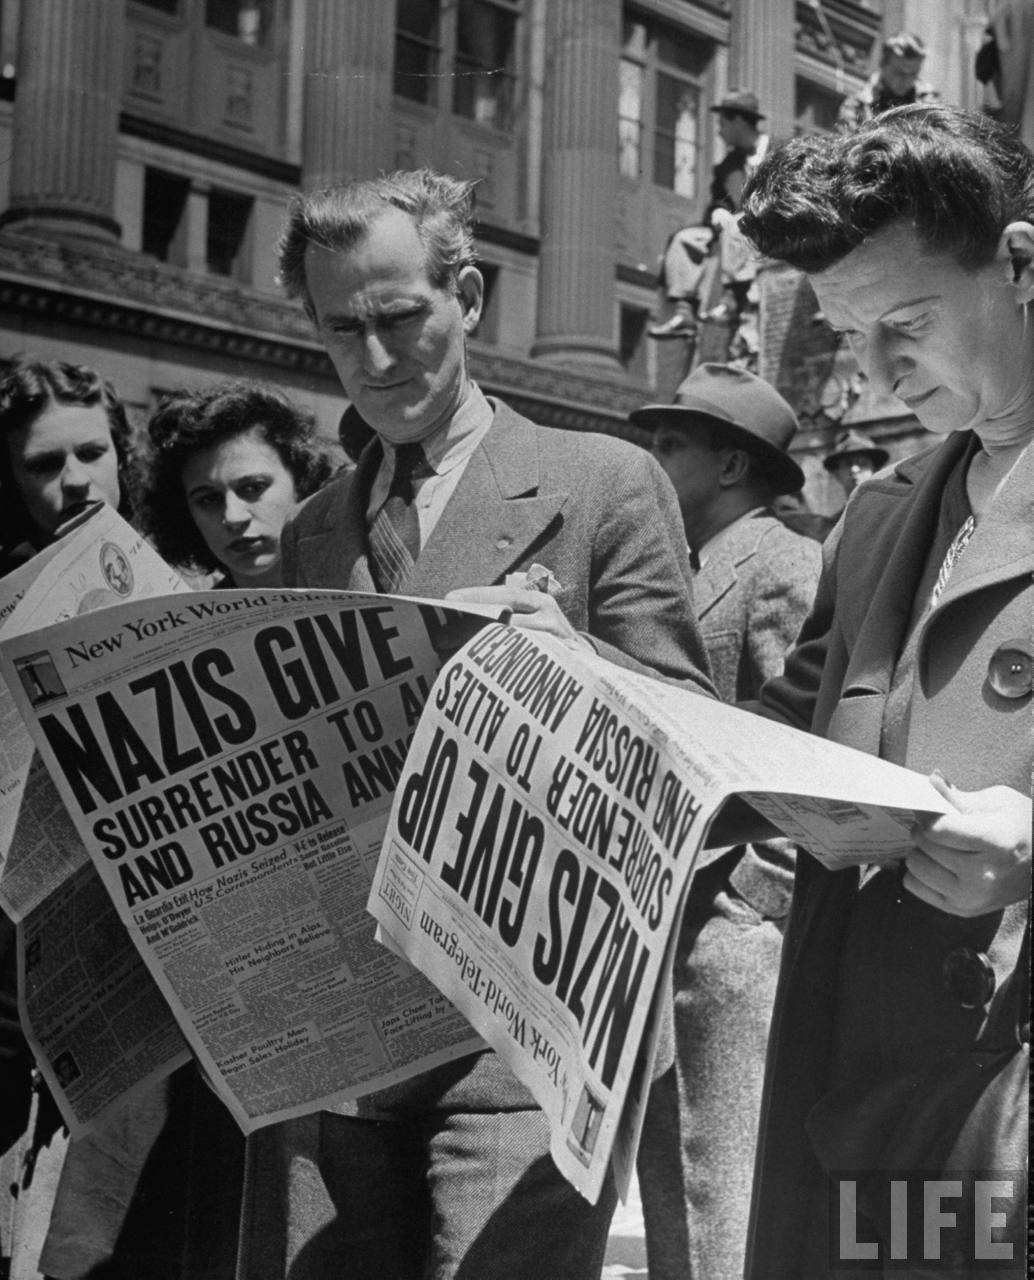 People eagerly reading New York World-Telegram newpapers w. the headline NAZIS GIVE UP/SURRENDER TO ALLIES AND RUSSIA ANNOUNCED, at newsstand in Times Square as people gather for massive end to war in Europe celebration.